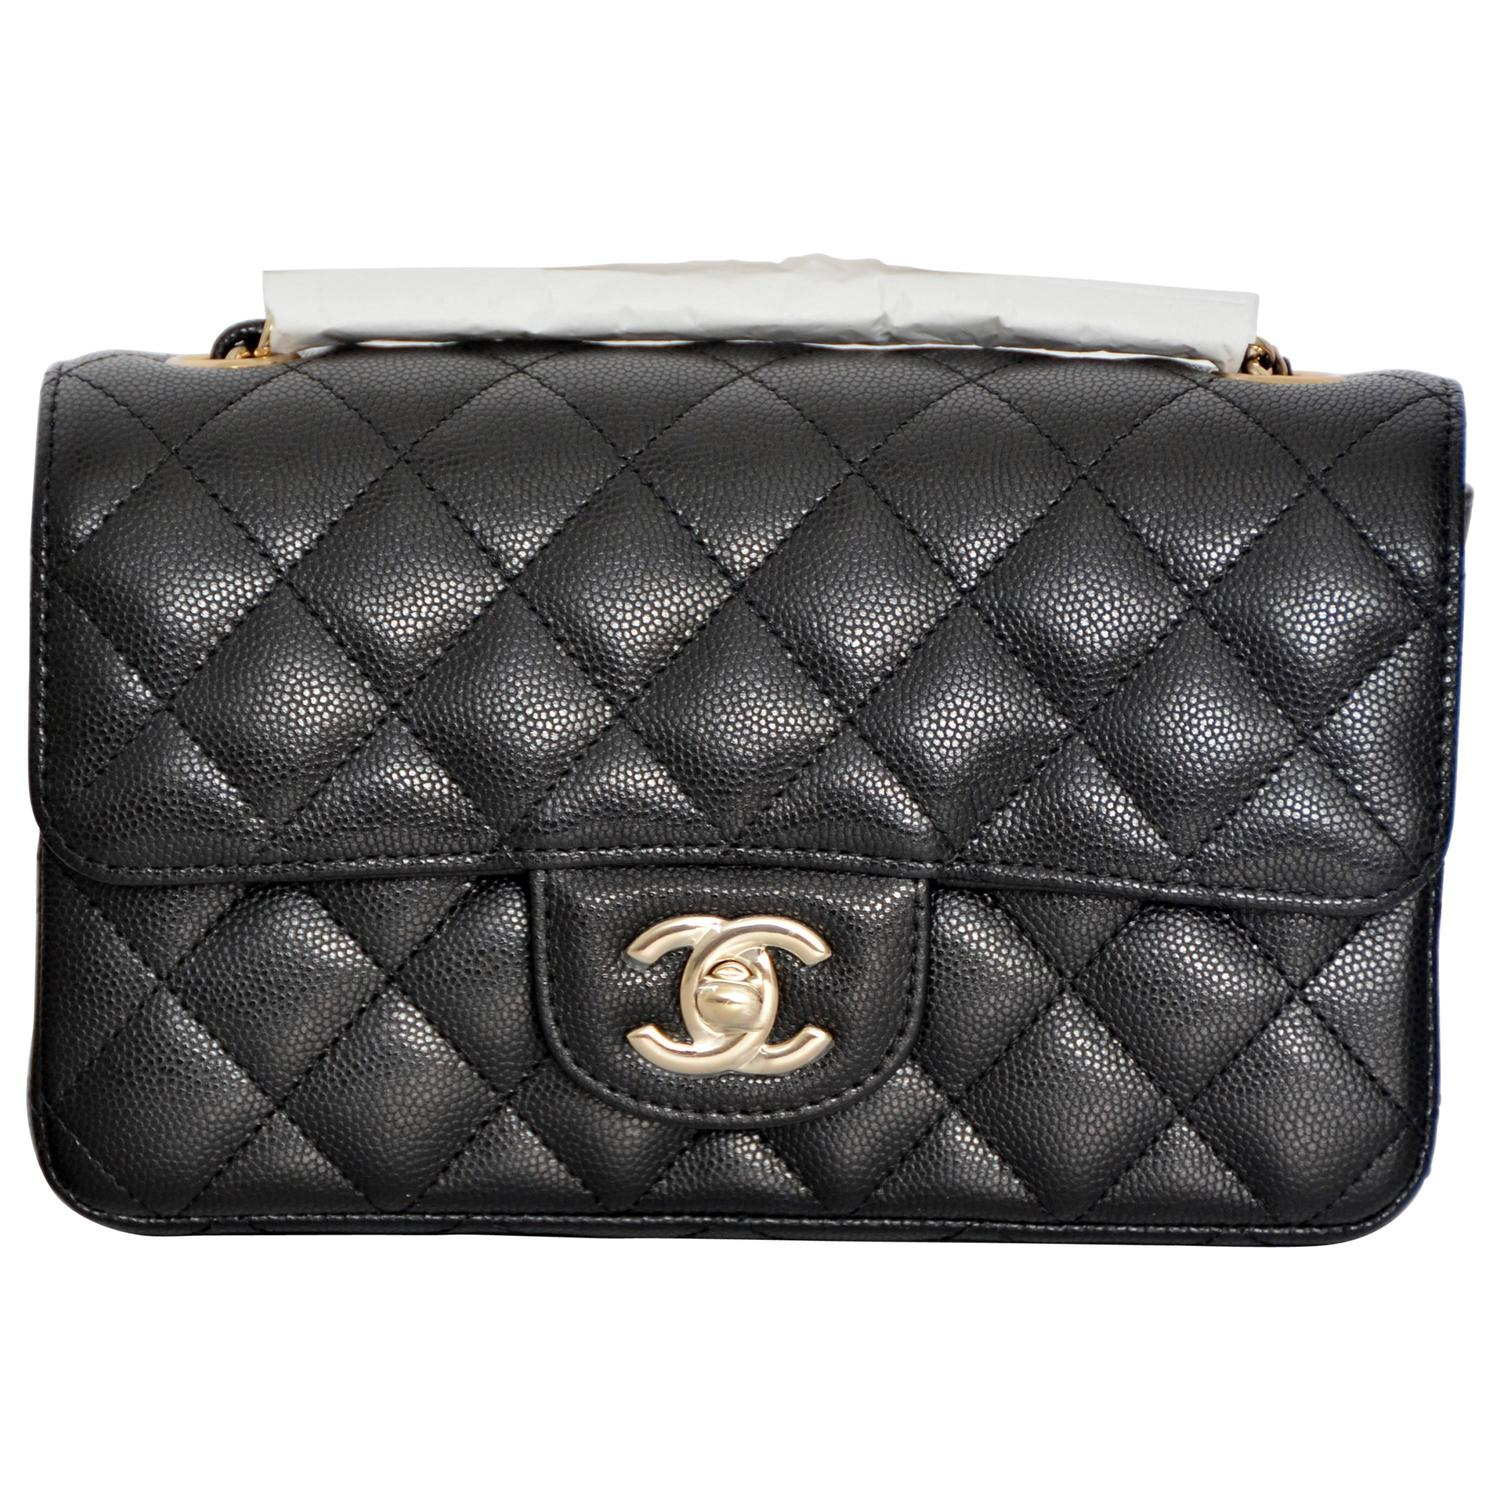 69af6ec48e242 CHANEL  17 Rectangle New Mini Black Caviar Light Gold Flap RARE SOLD OUT at  1stdibs